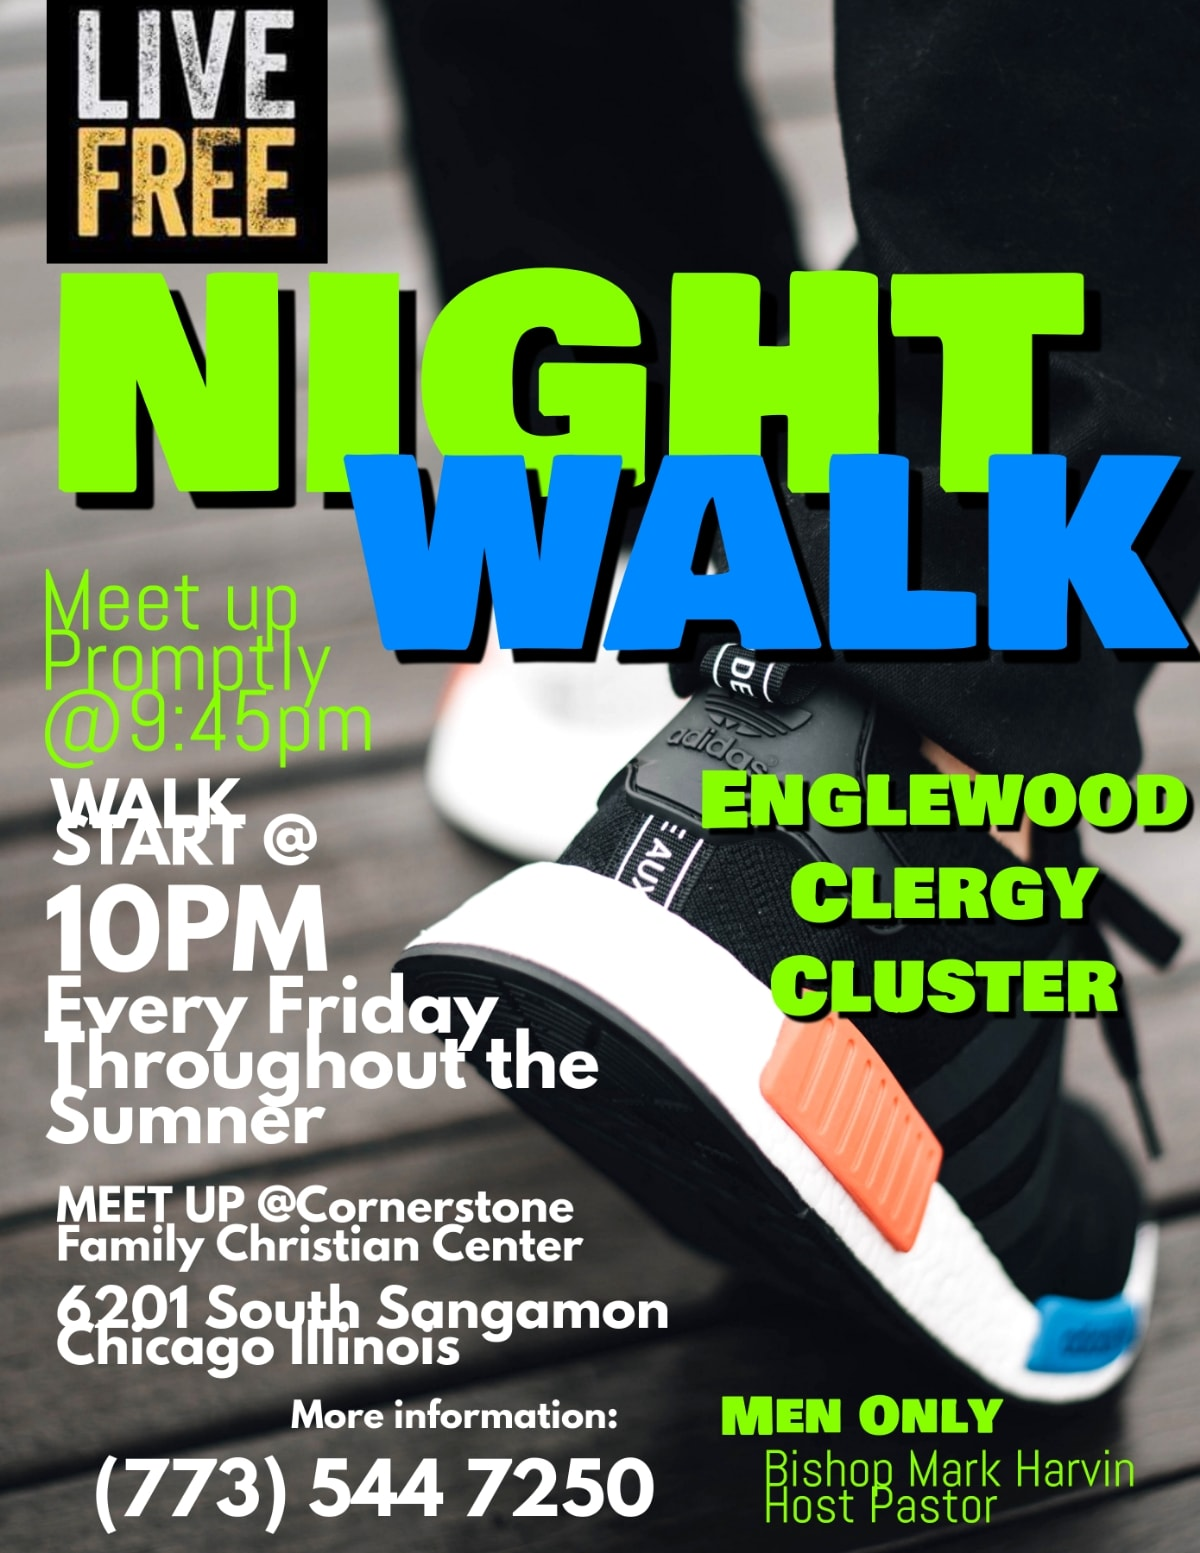 Live Free Englewood Night Walk